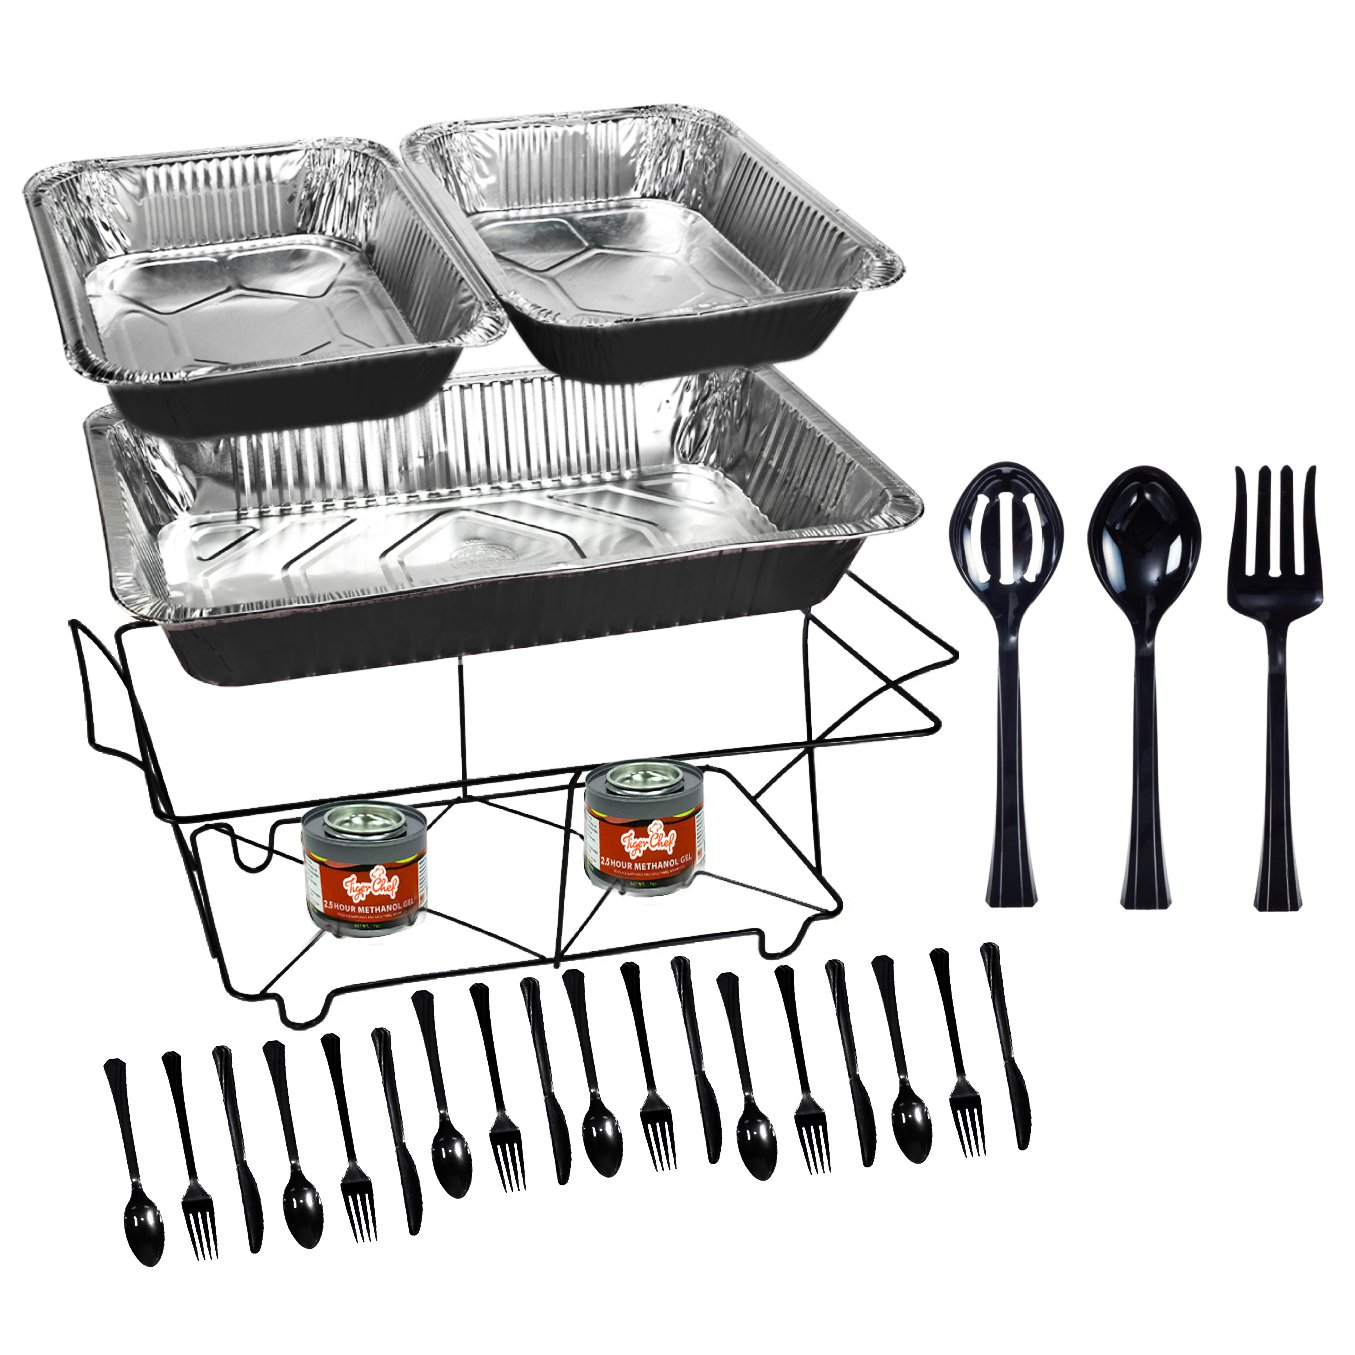 Tiger Chef 33-Piece Black Food Warmer Chafing Dish Buffet Set, Disposable Chafing Dishes with Colorful Baking Pans, Fuel Gel, Serving Utensils and Plastic Cutlery